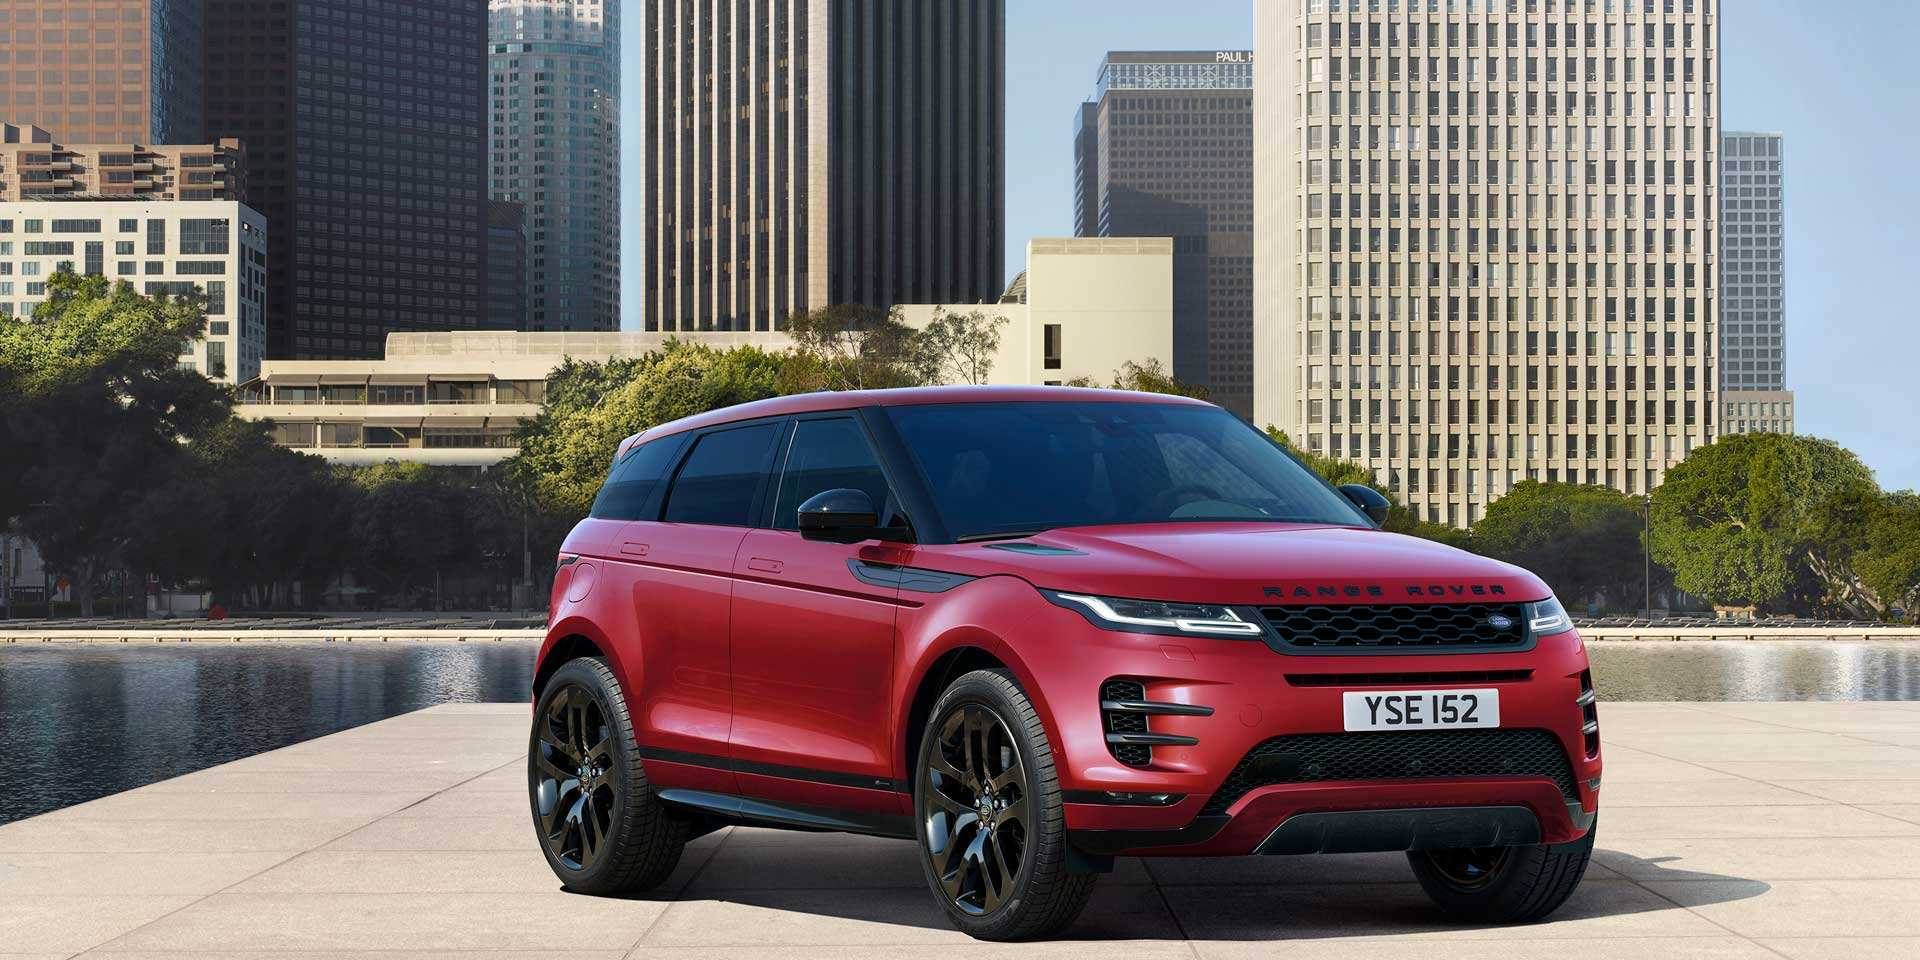 38 Best Review 2020 Land Rover Price and Review for 2020 Land Rover